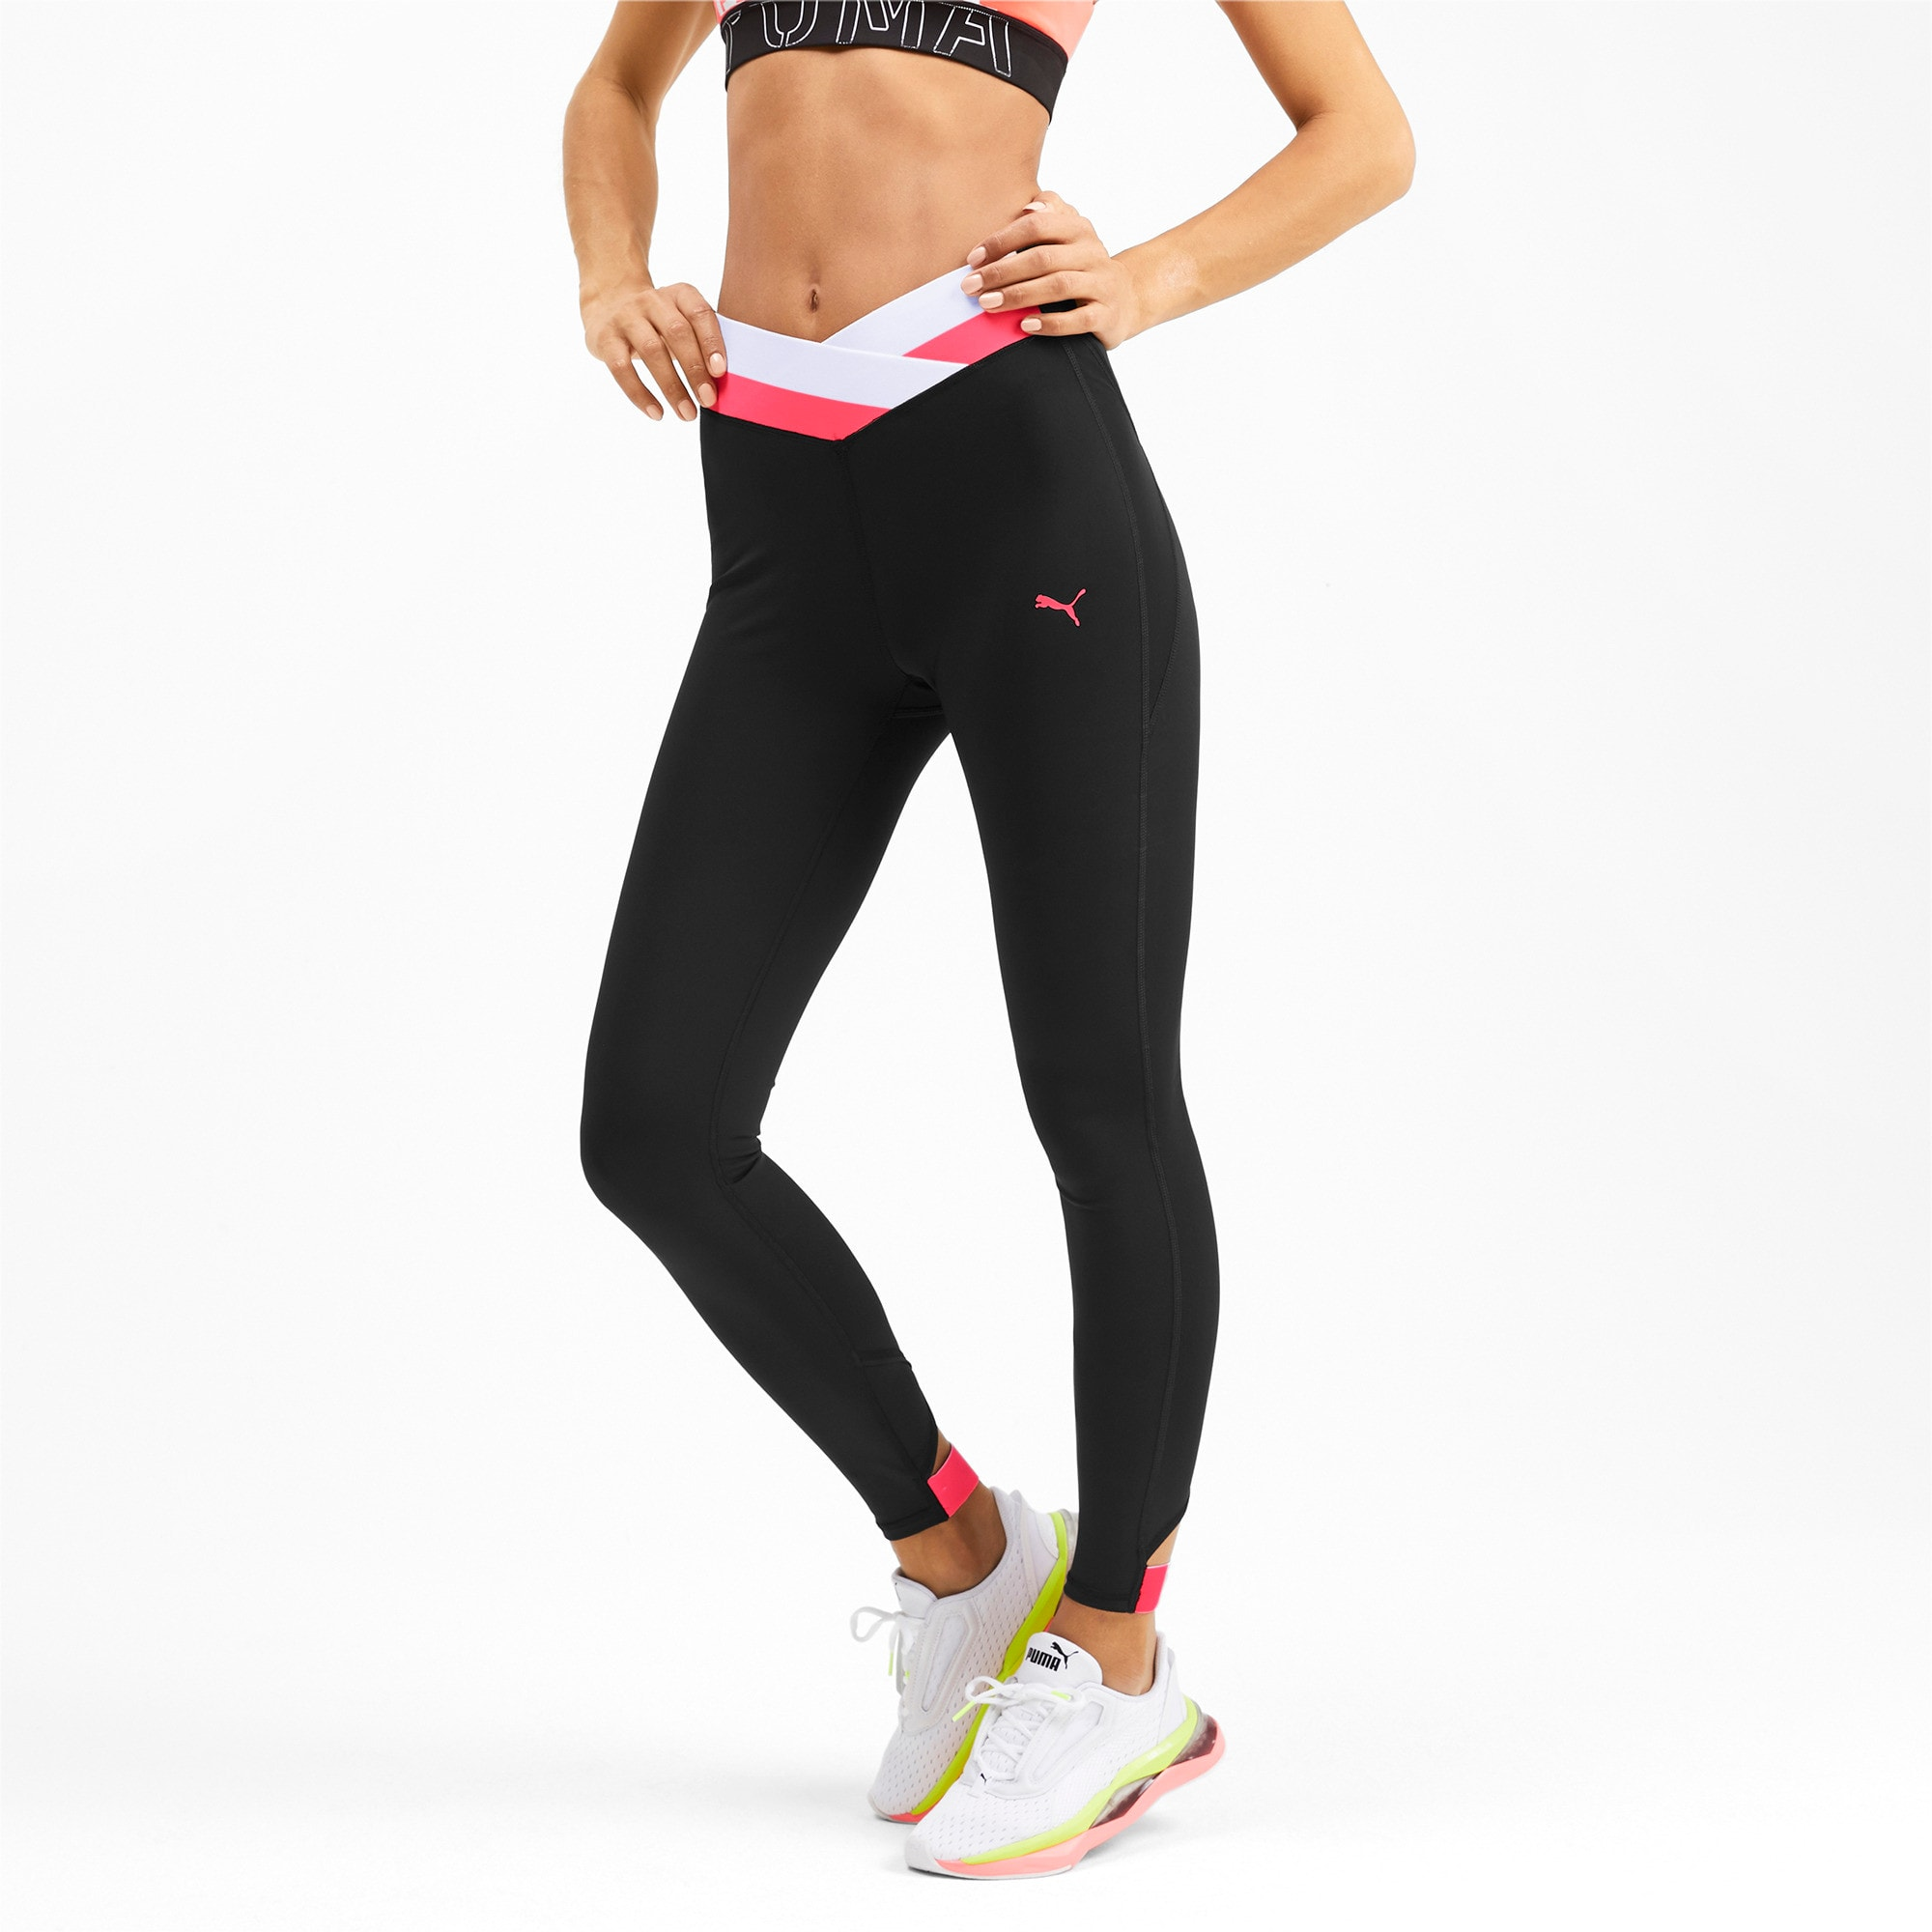 Thumbnail 1 of HIT Feel It 7/8 Women's Training Leggings, Puma Black-Pink Alert, medium